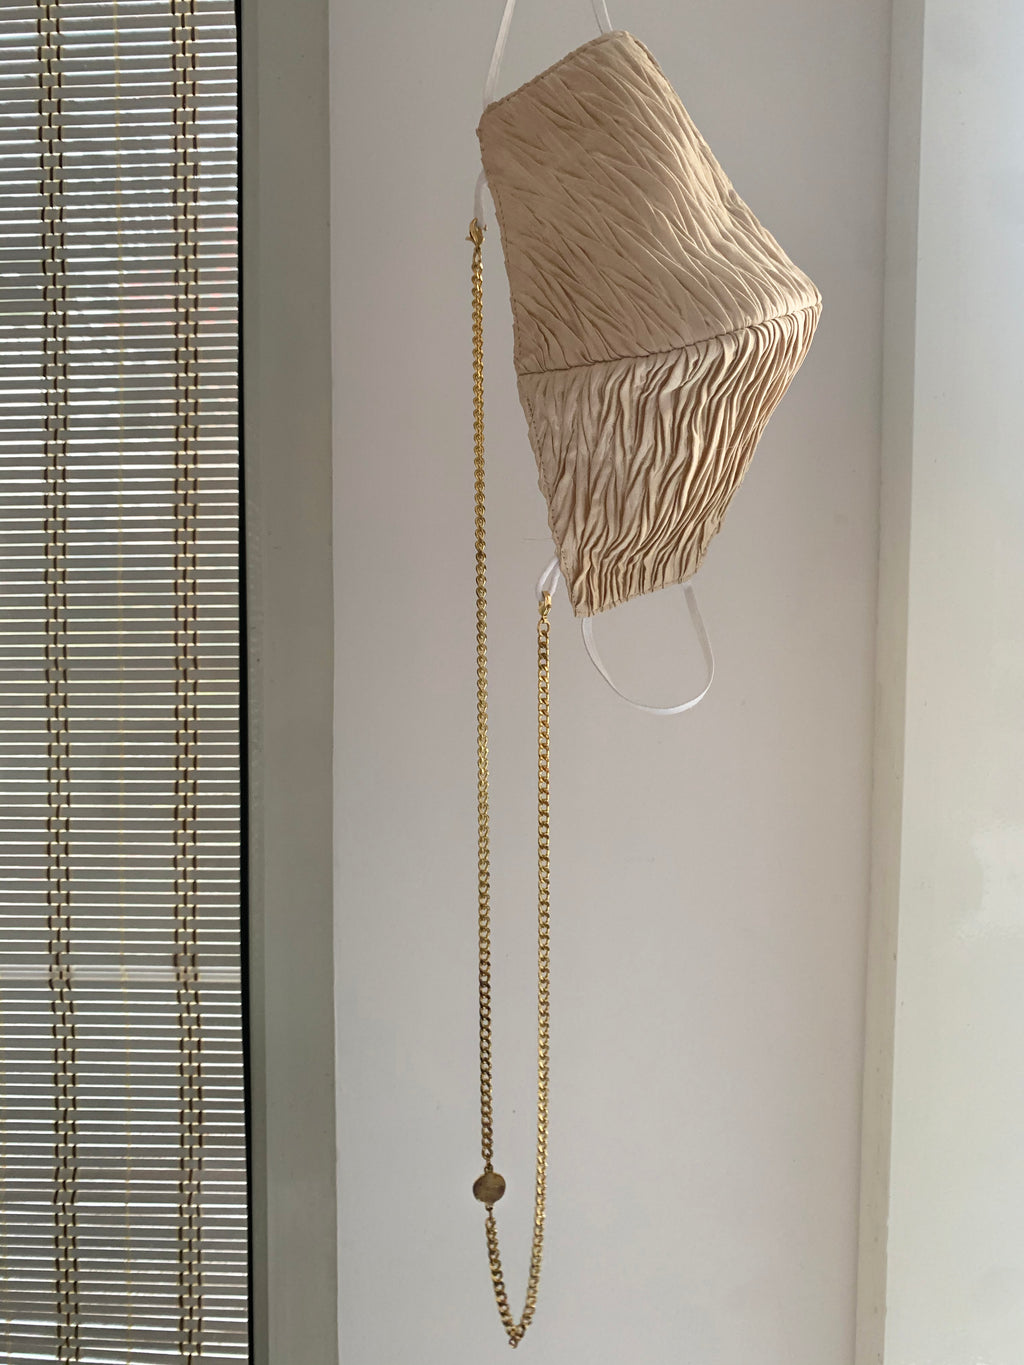 PLEATED MASK & CHAIN SET - Beige & Gold